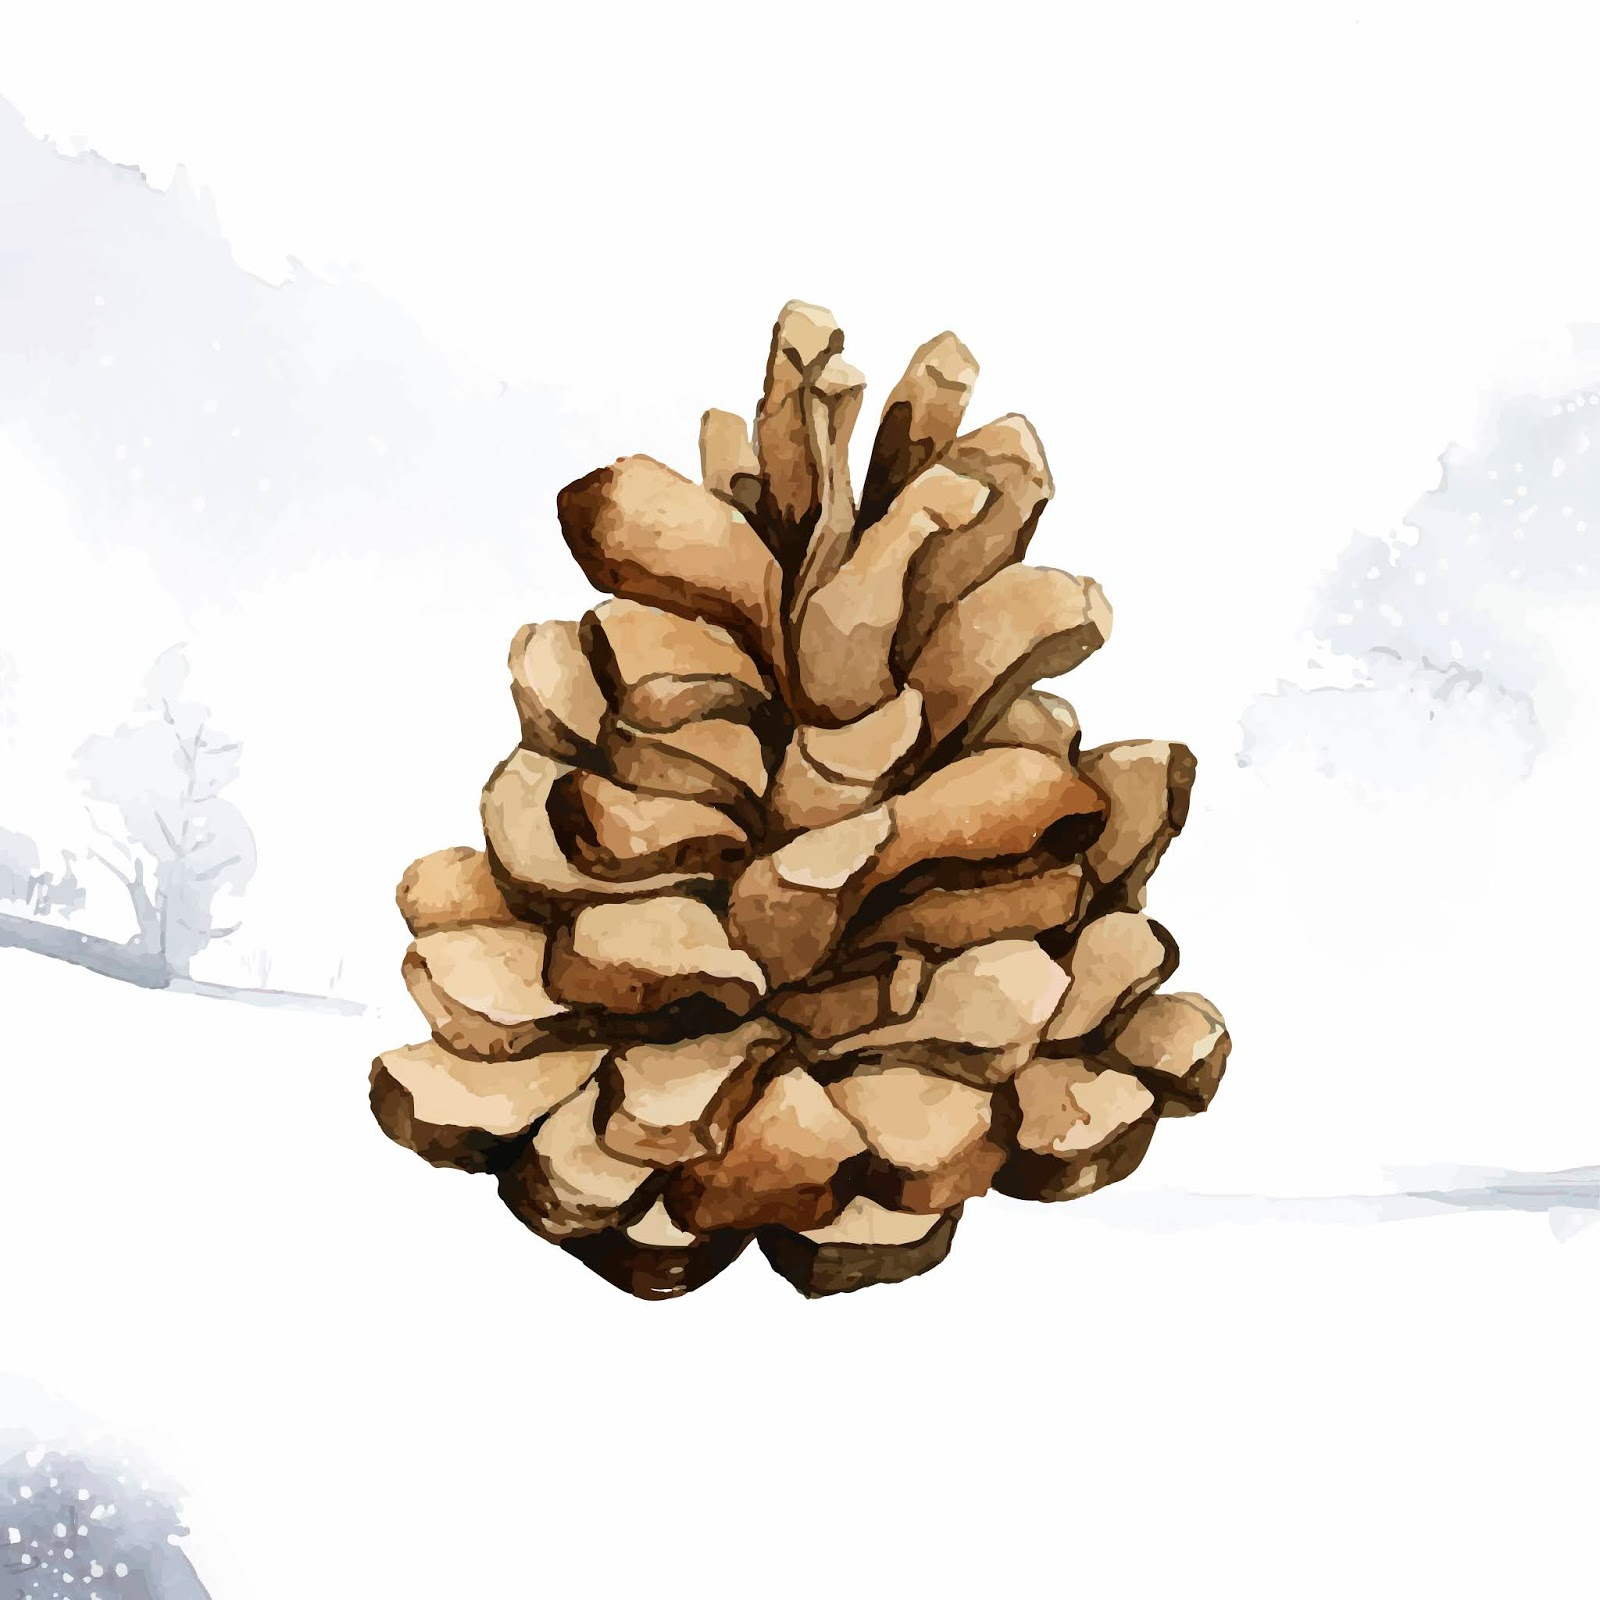 Pine Cone Painted By Watercolor Vector Free Download Vector CDR, AI, EPS and PNG Formats